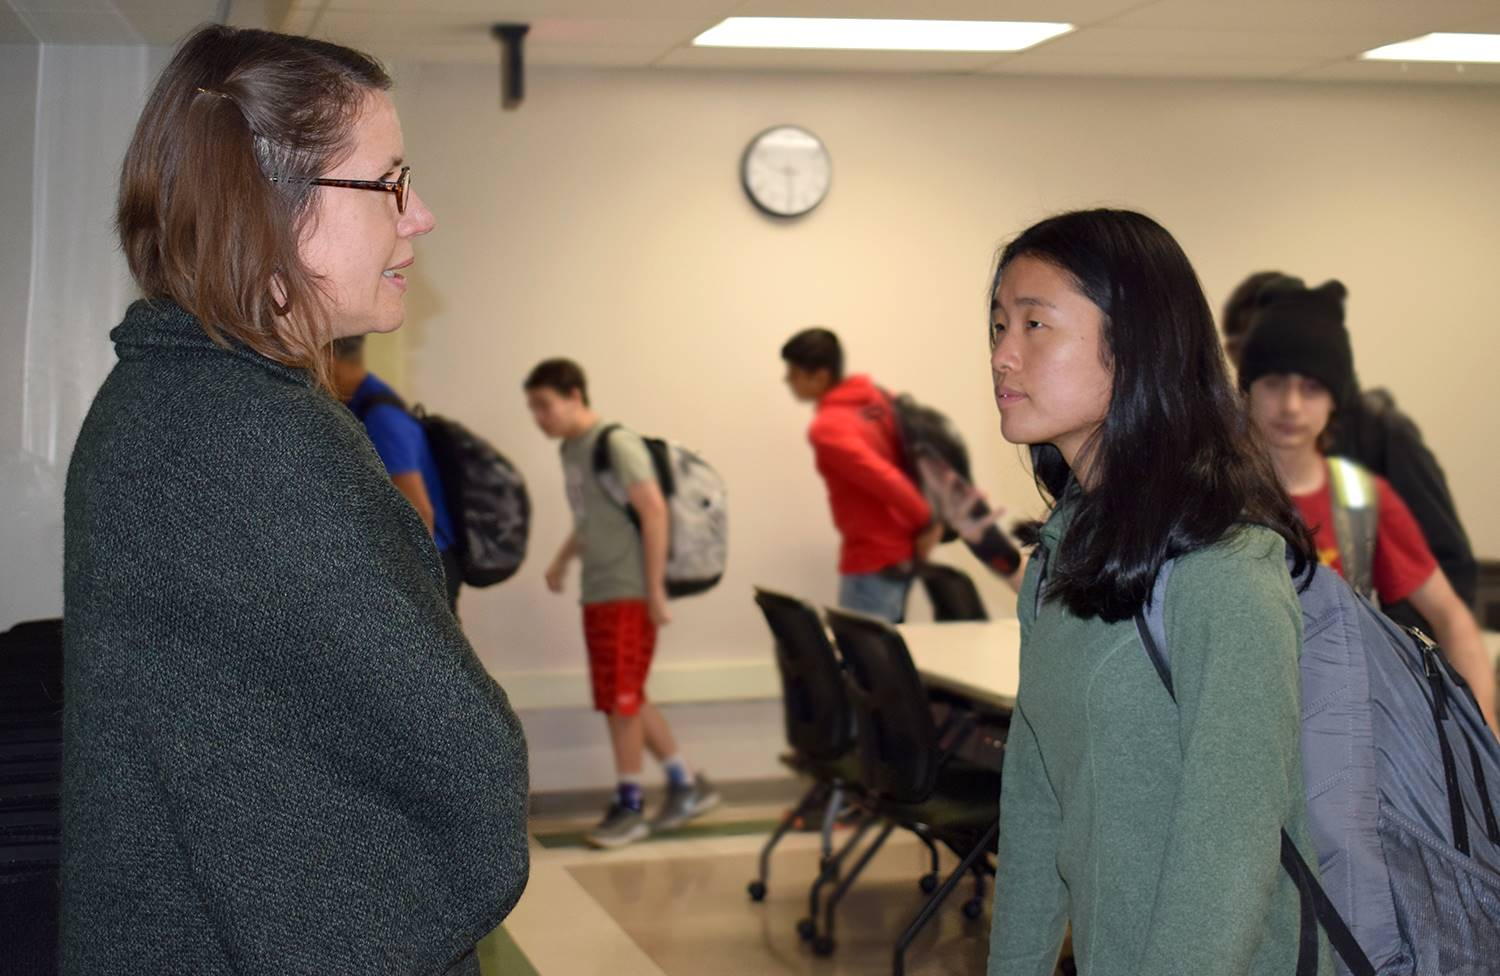 Dr. Hadsell speaks with a student after her presentation on artificial intelligence on May 2, 2019.